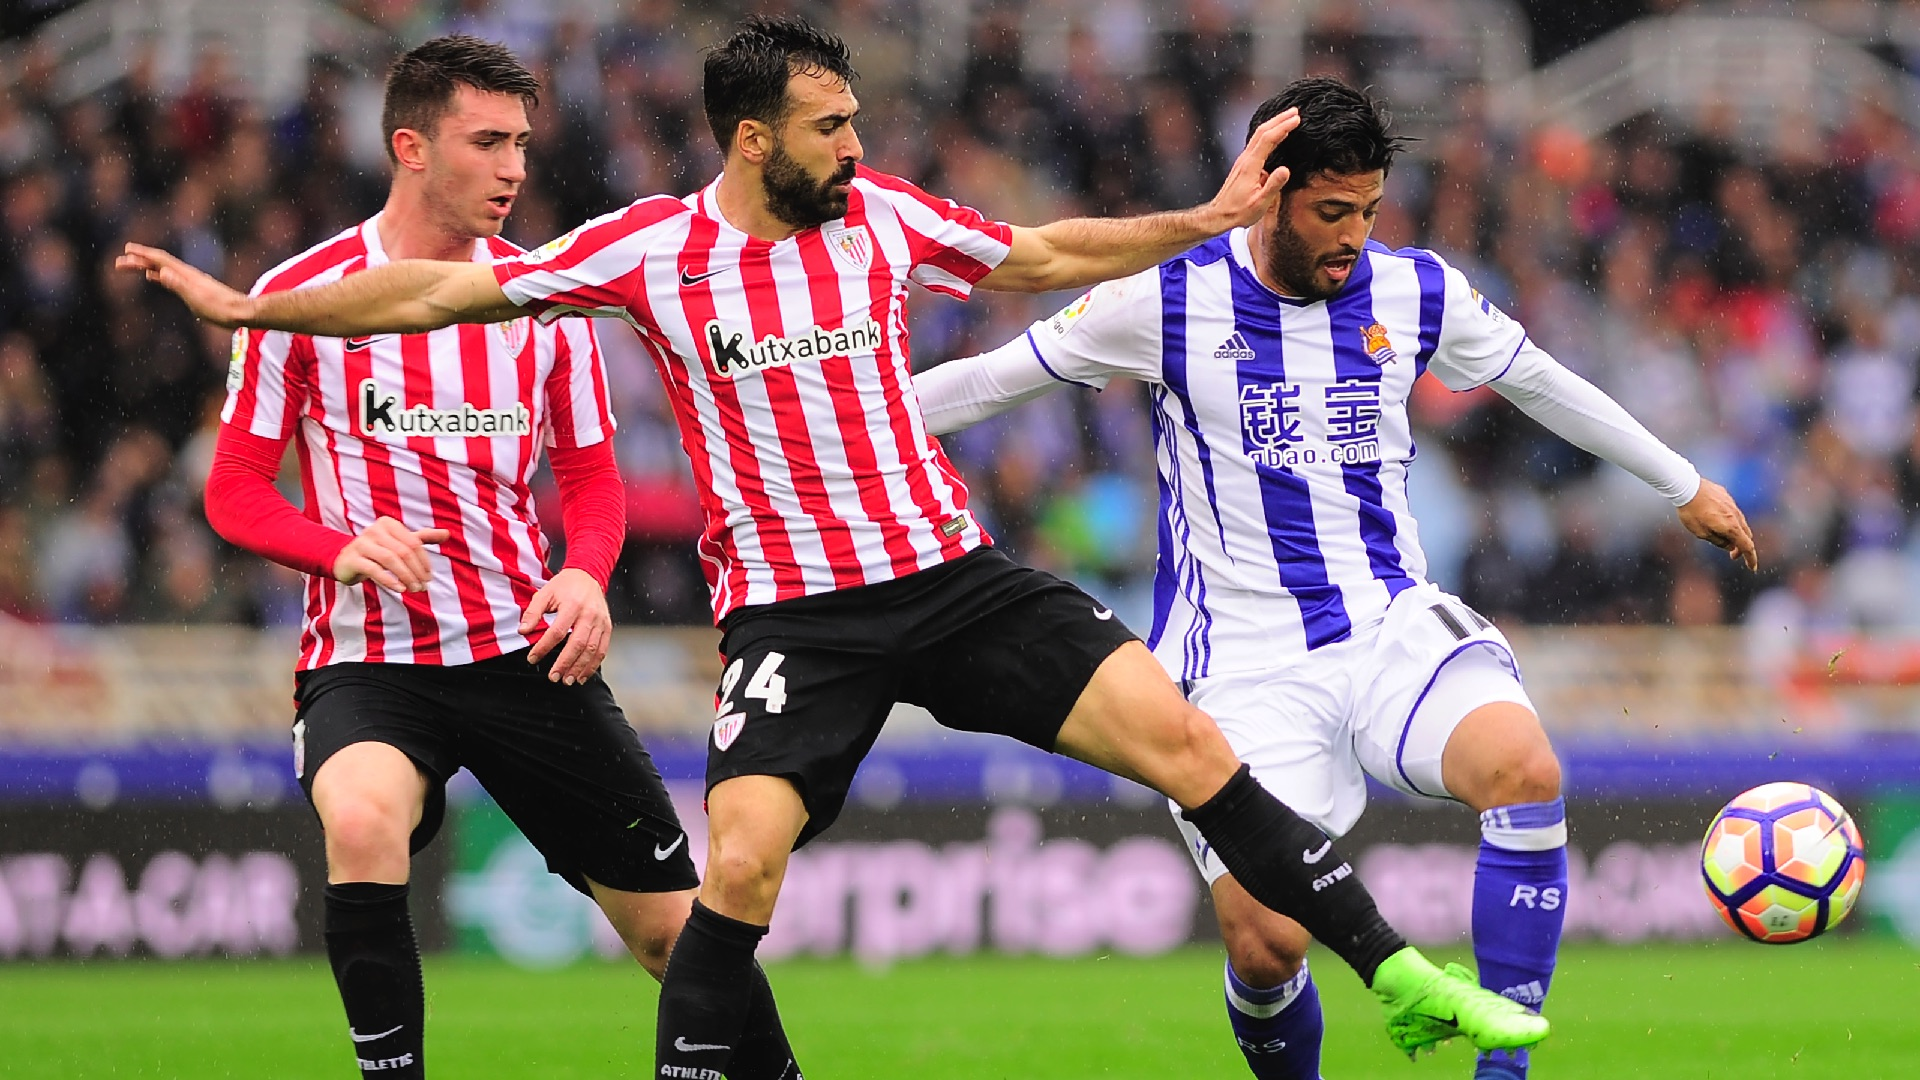 Real Sociedad Vs Atletico Madrid Betting Tips Latest Odds